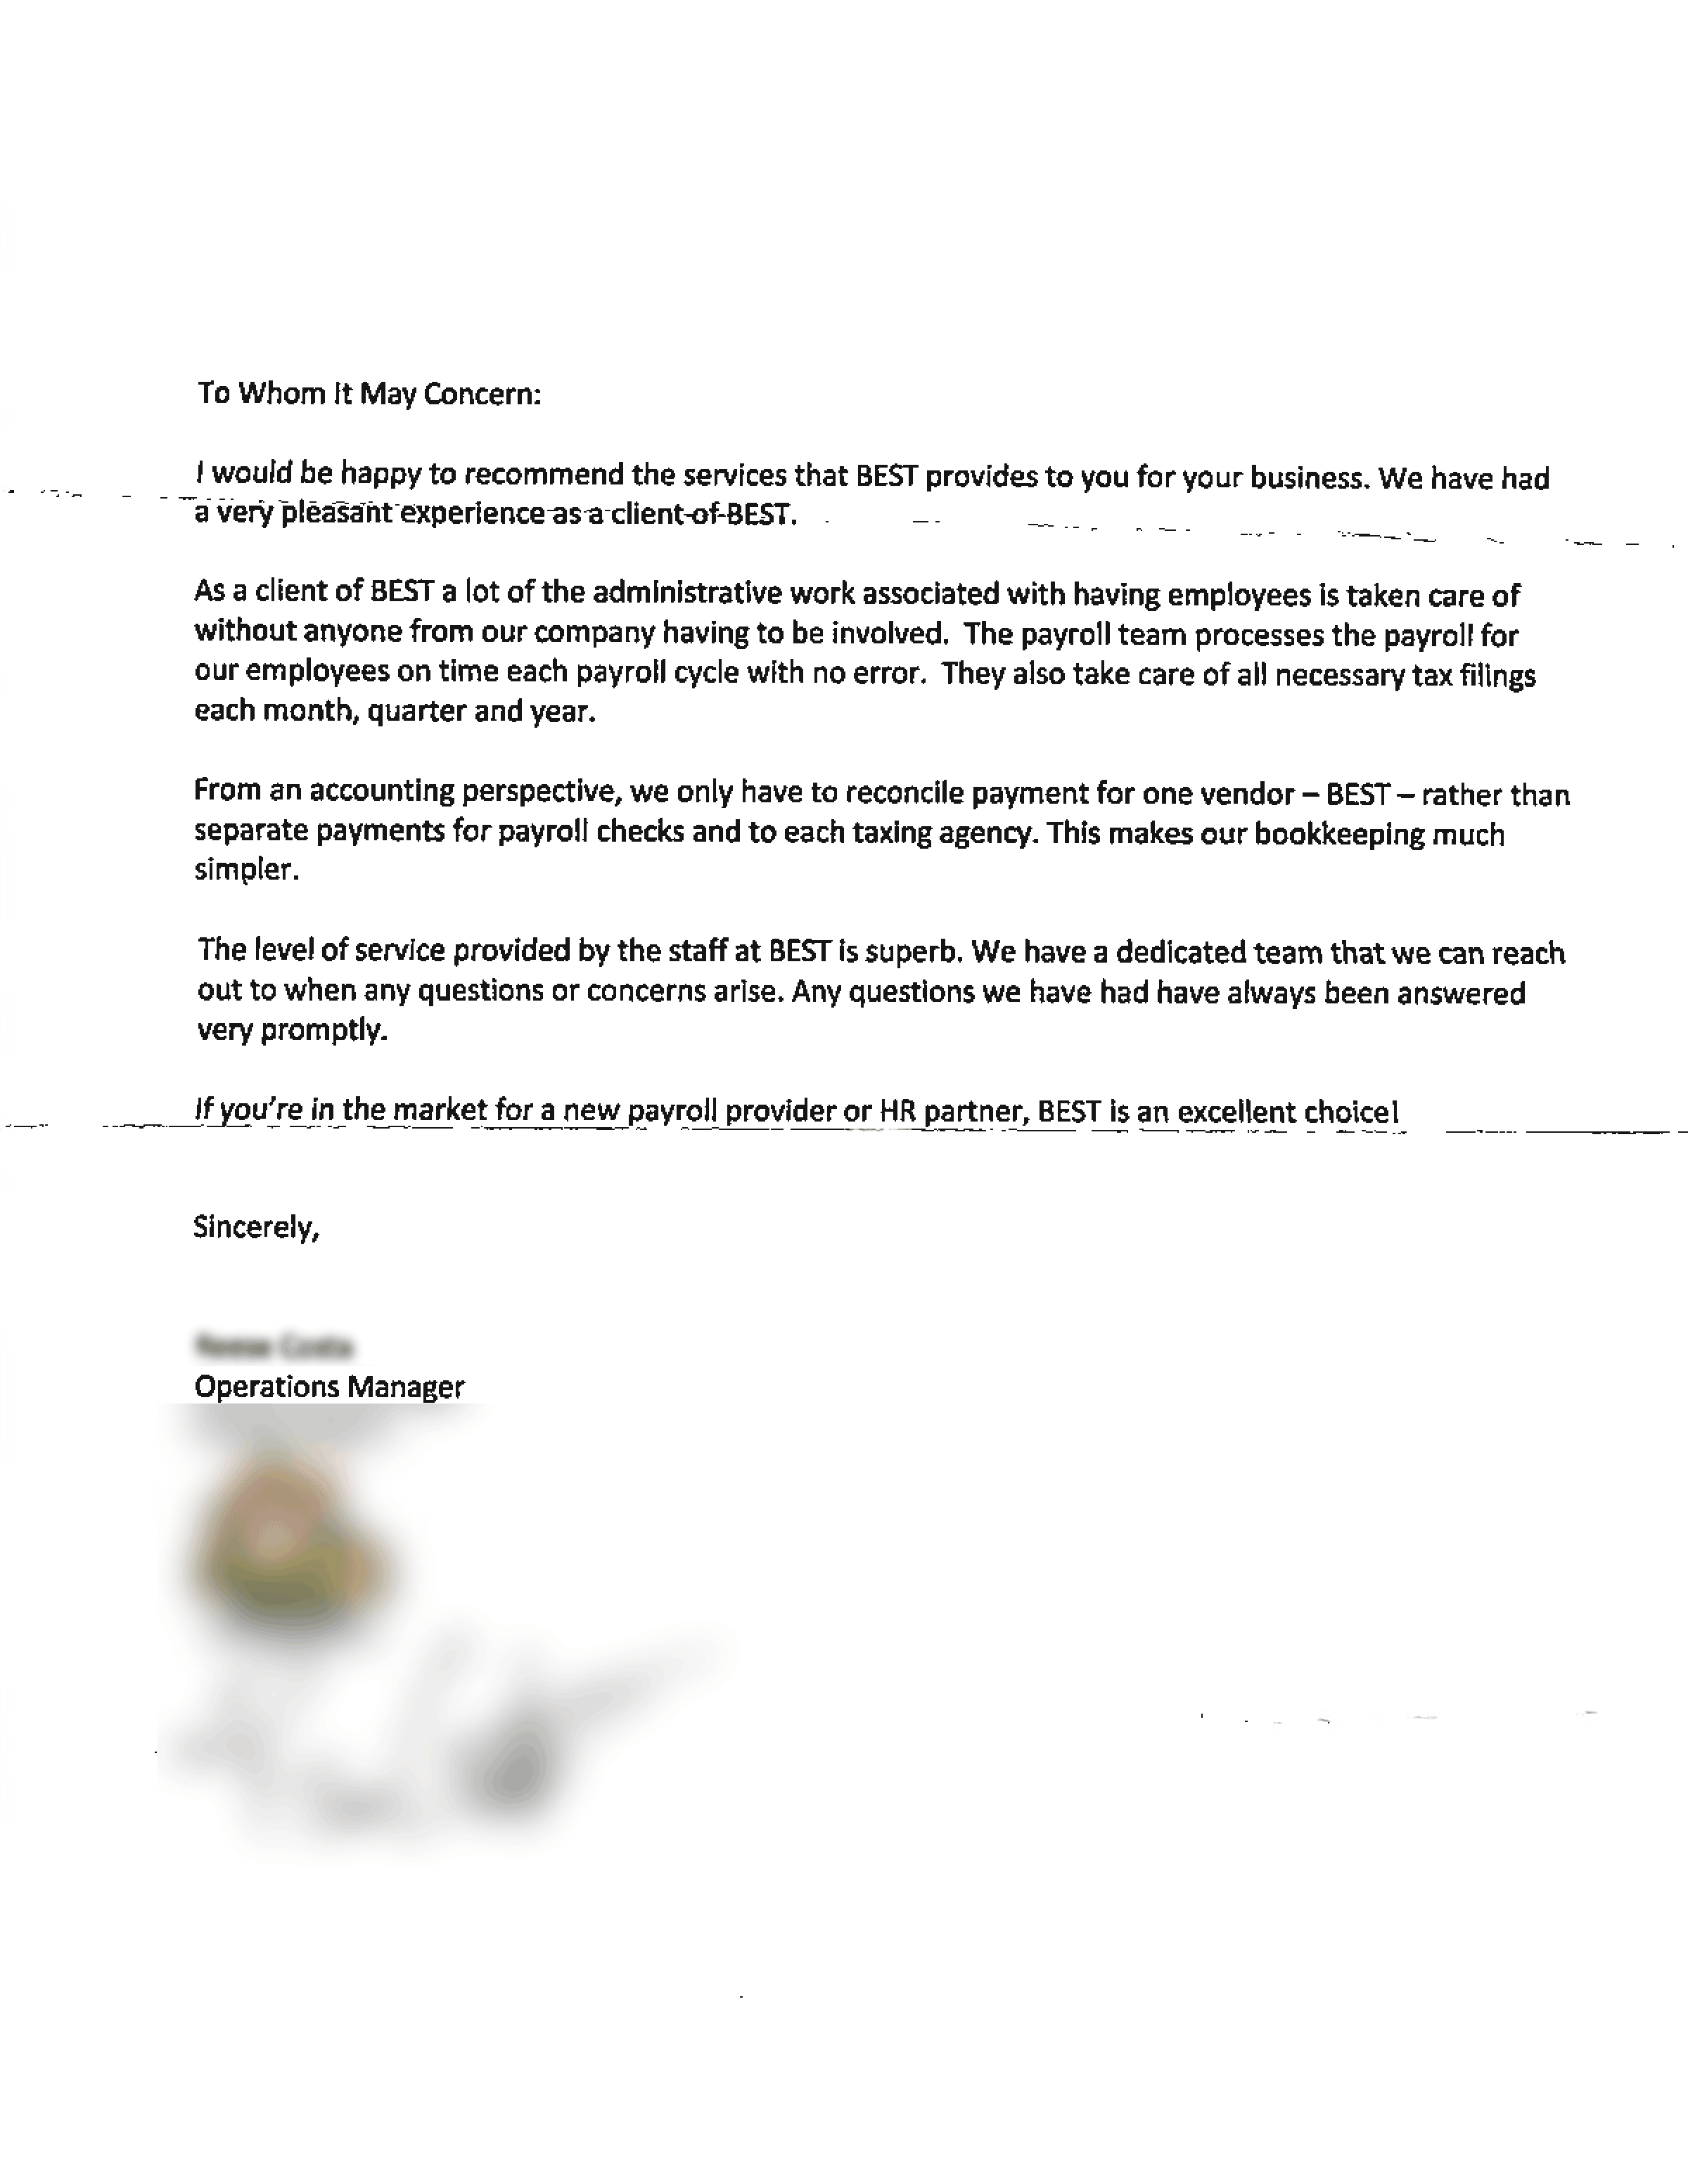 Sneakz-Signed-Reference-Letter-20170517.png